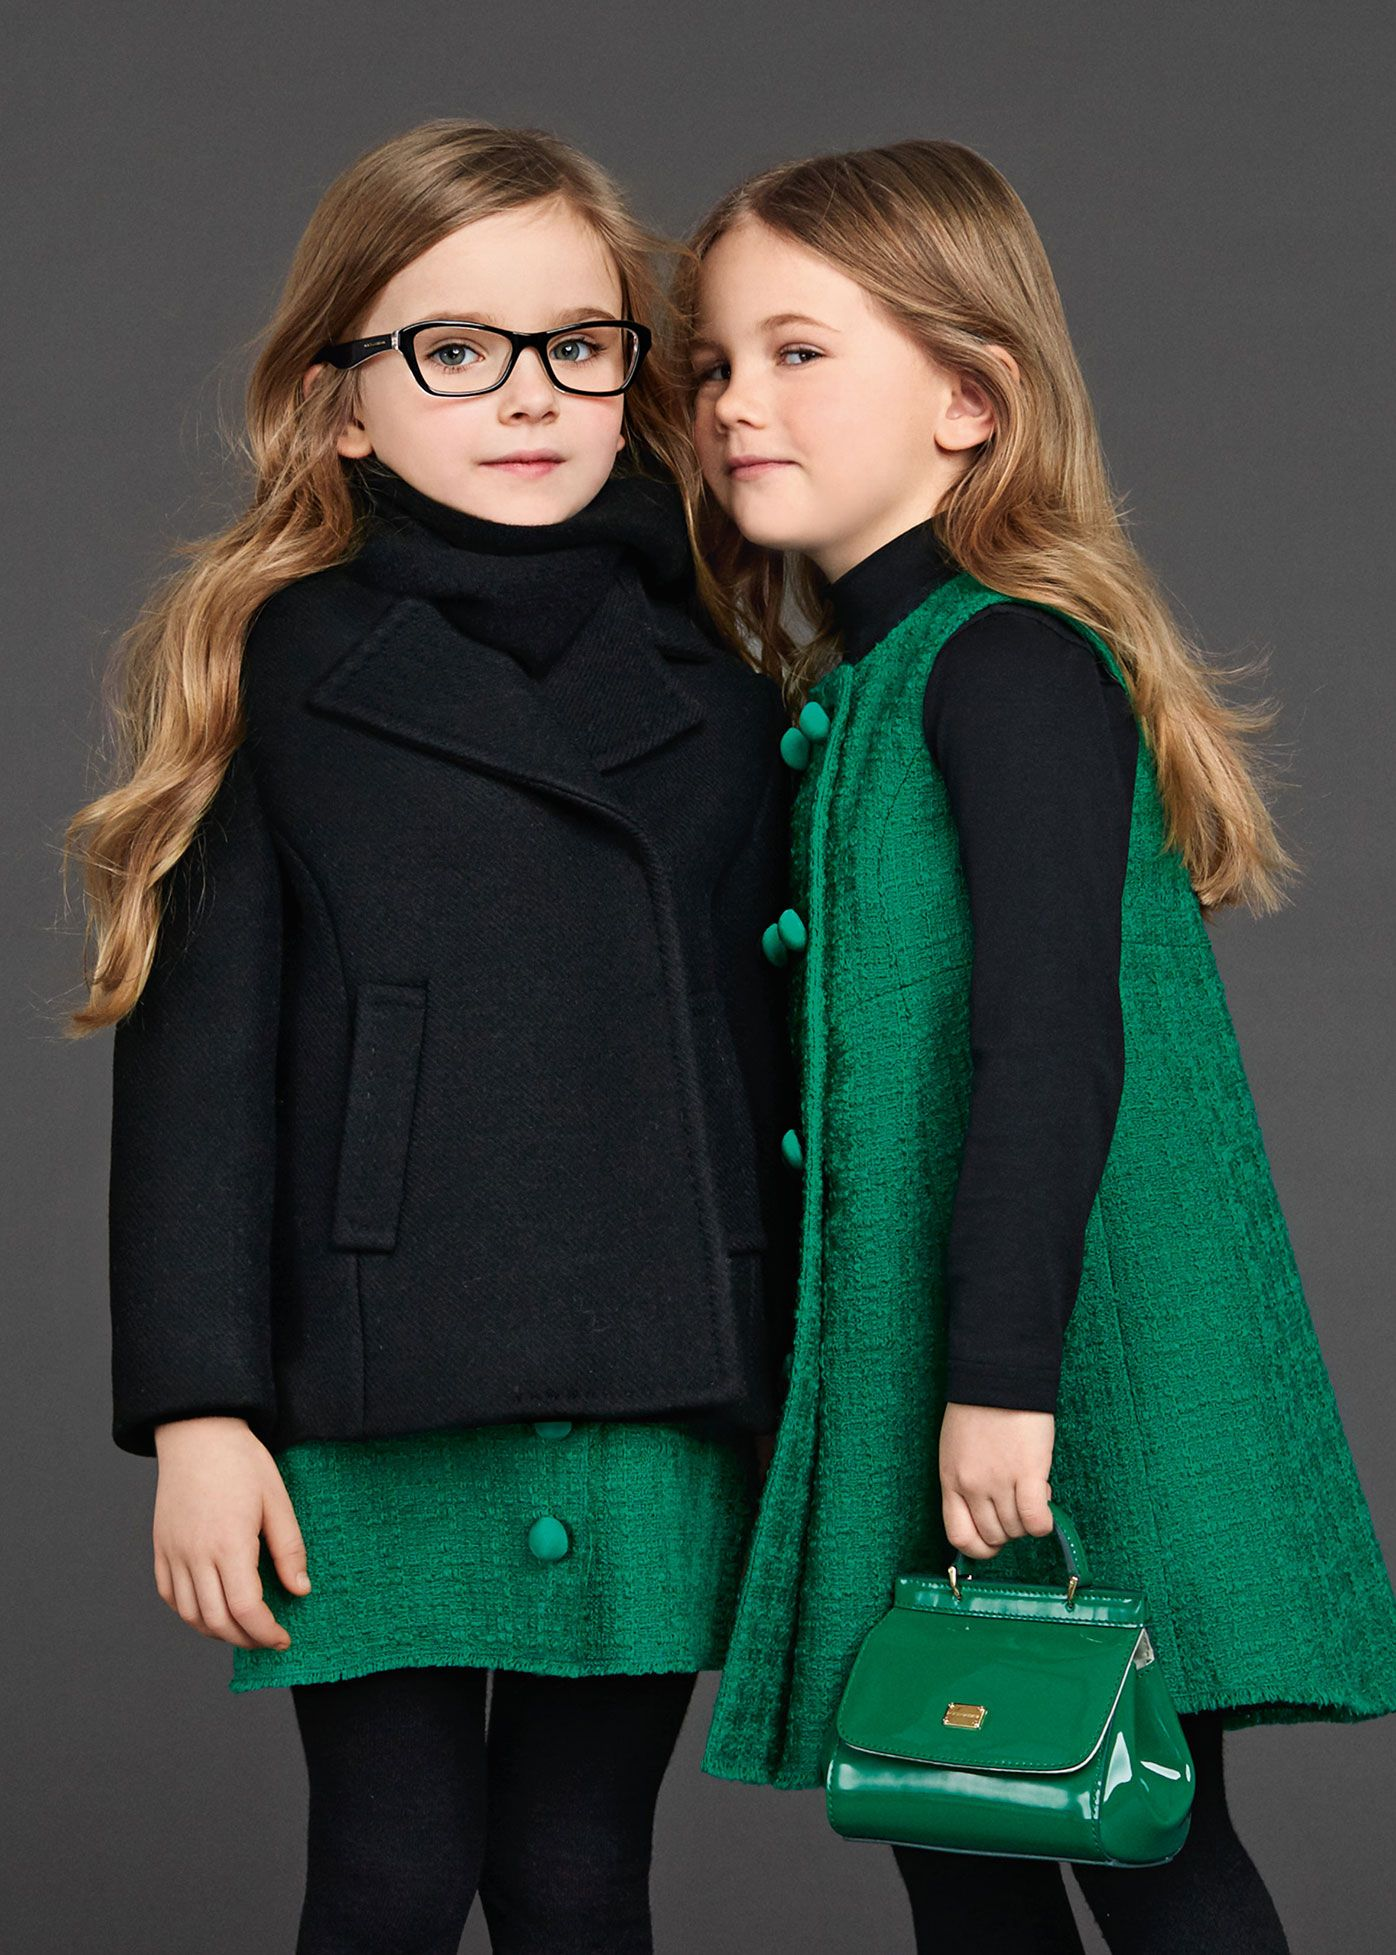 30 Dolce & Gabbana Kids Fashion Wear for Fall/Winter 2016 ...